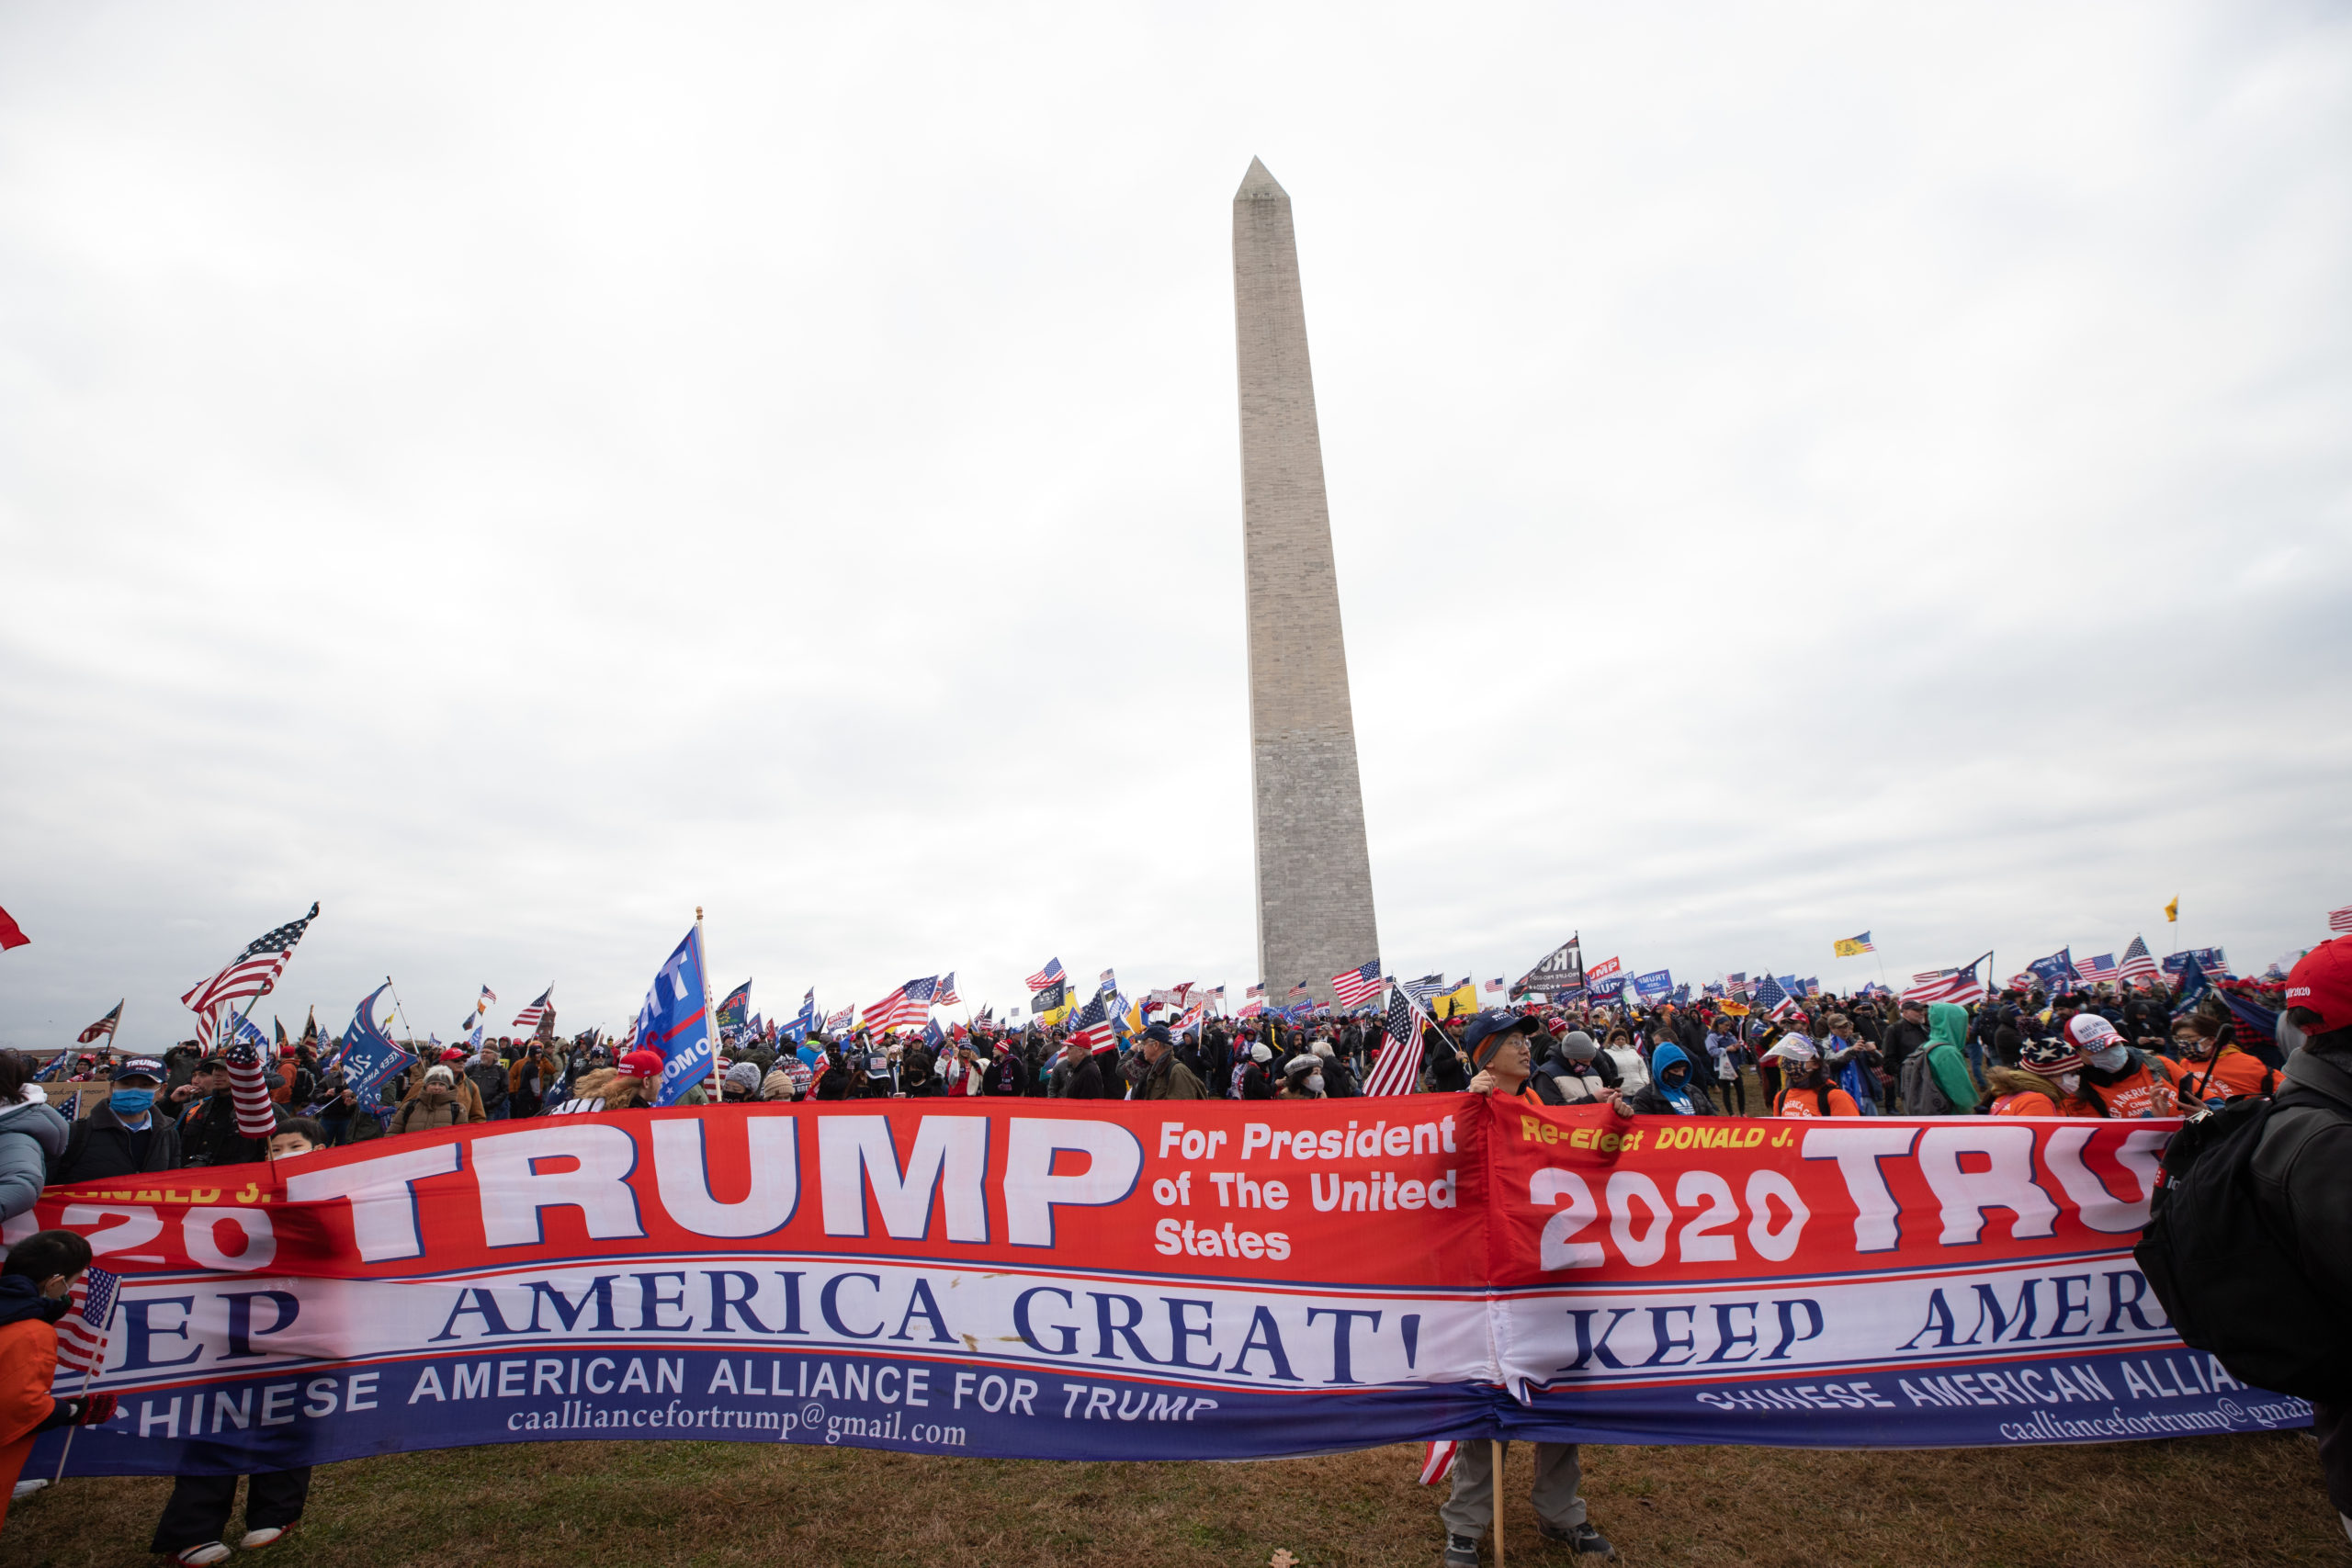 Thousands of supporters of President Donald Trump gathered to hear him speak in Washington, D.C. on Jan. 6, 2021. (Kaylee Greenlee – Daily Caller News Foundation)